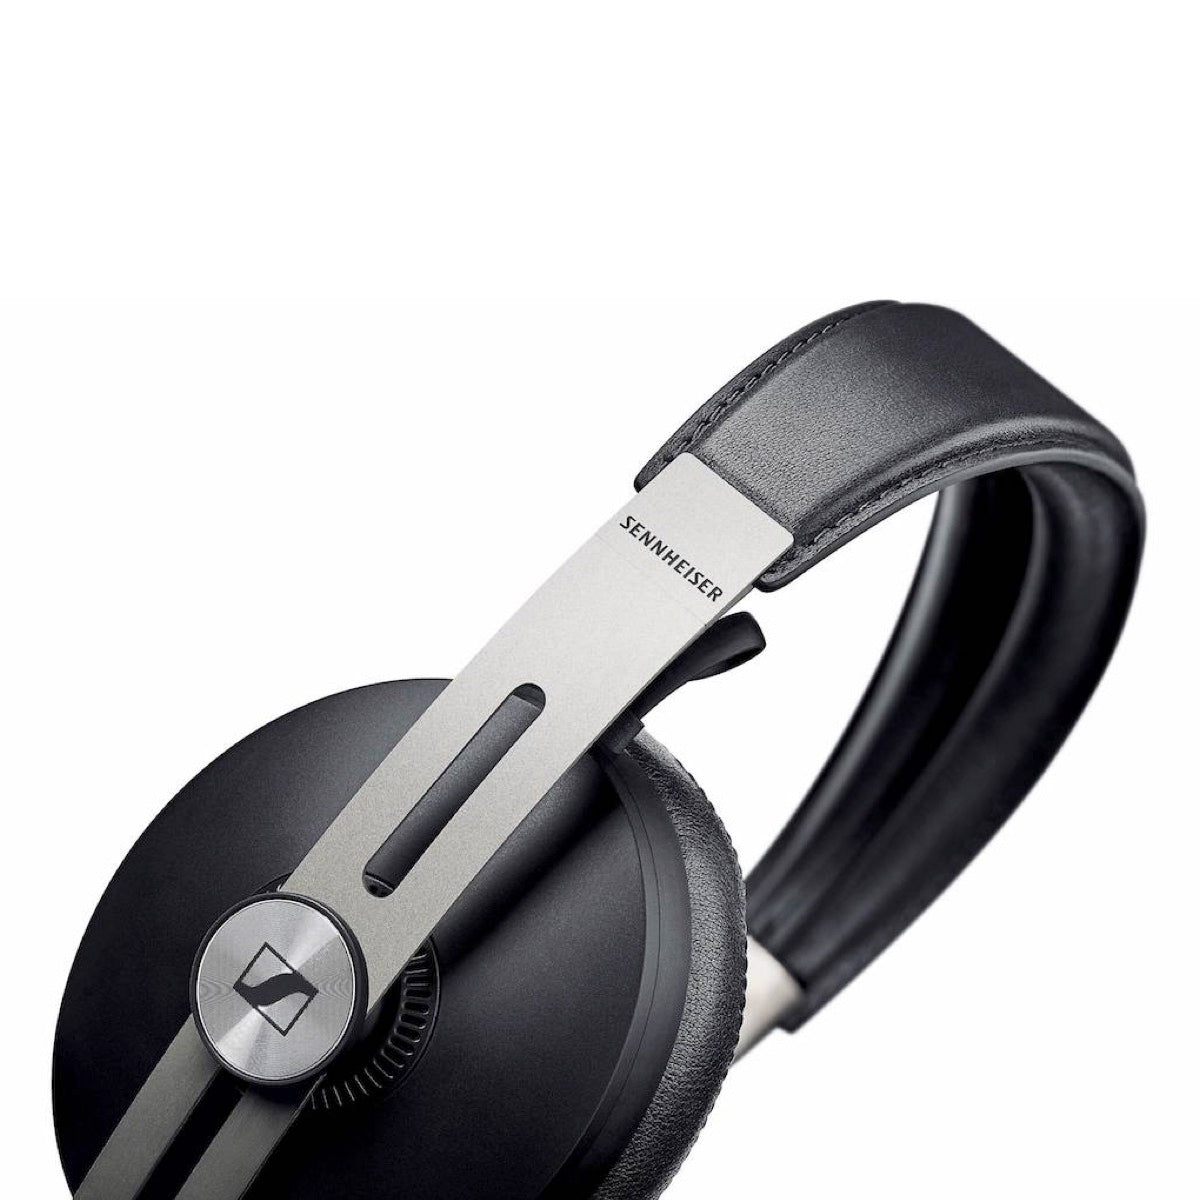 Sennheiser MOMENTUM 3 Wireless - Wireless Headphone, Sennheiser, Headphone - AVStore.in